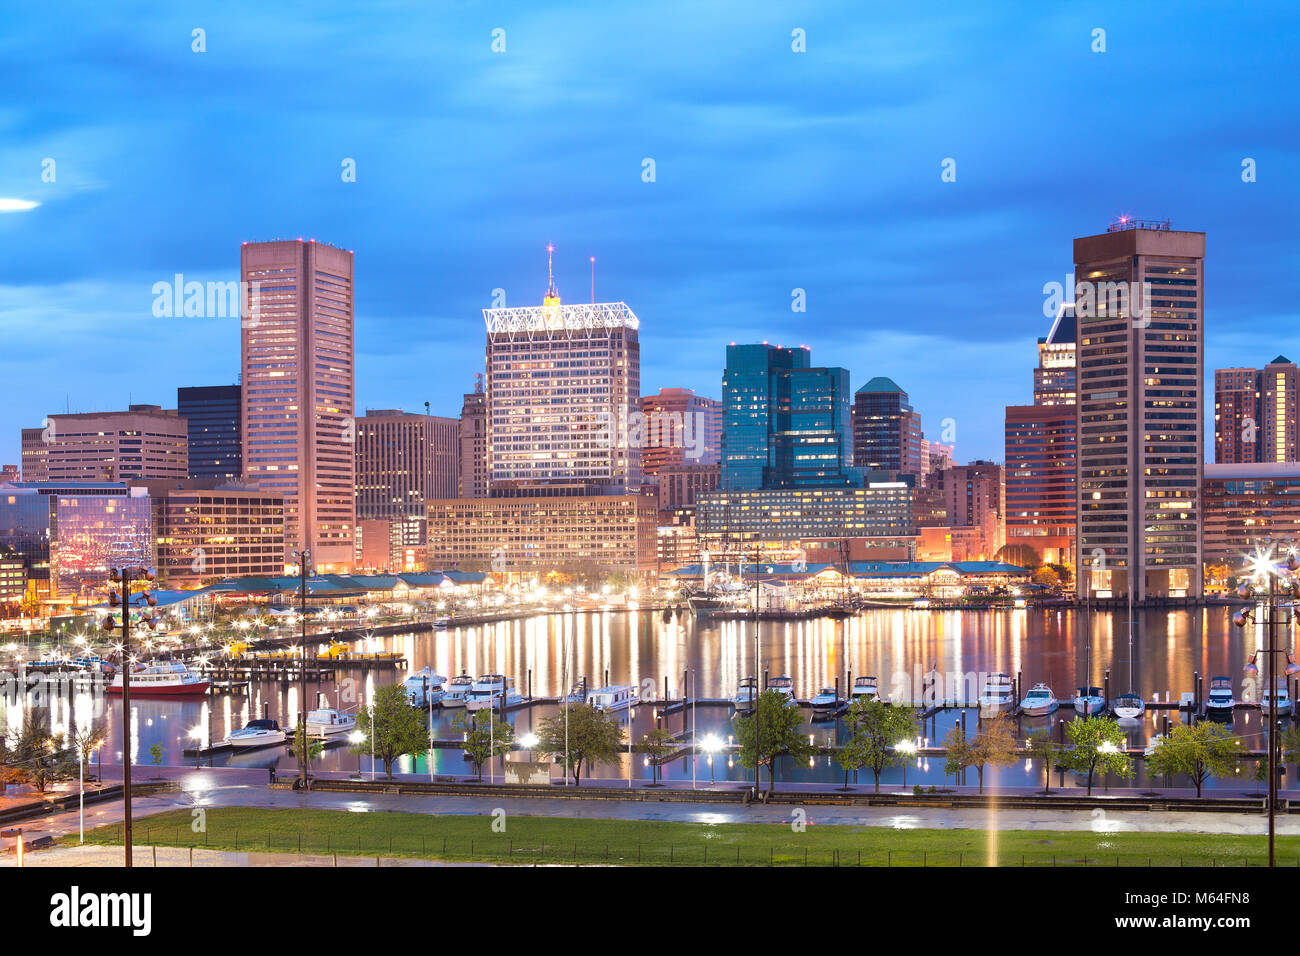 Downtown city skyline and Inner Harbor, Baltimore, Maryland, USA - Stock Image